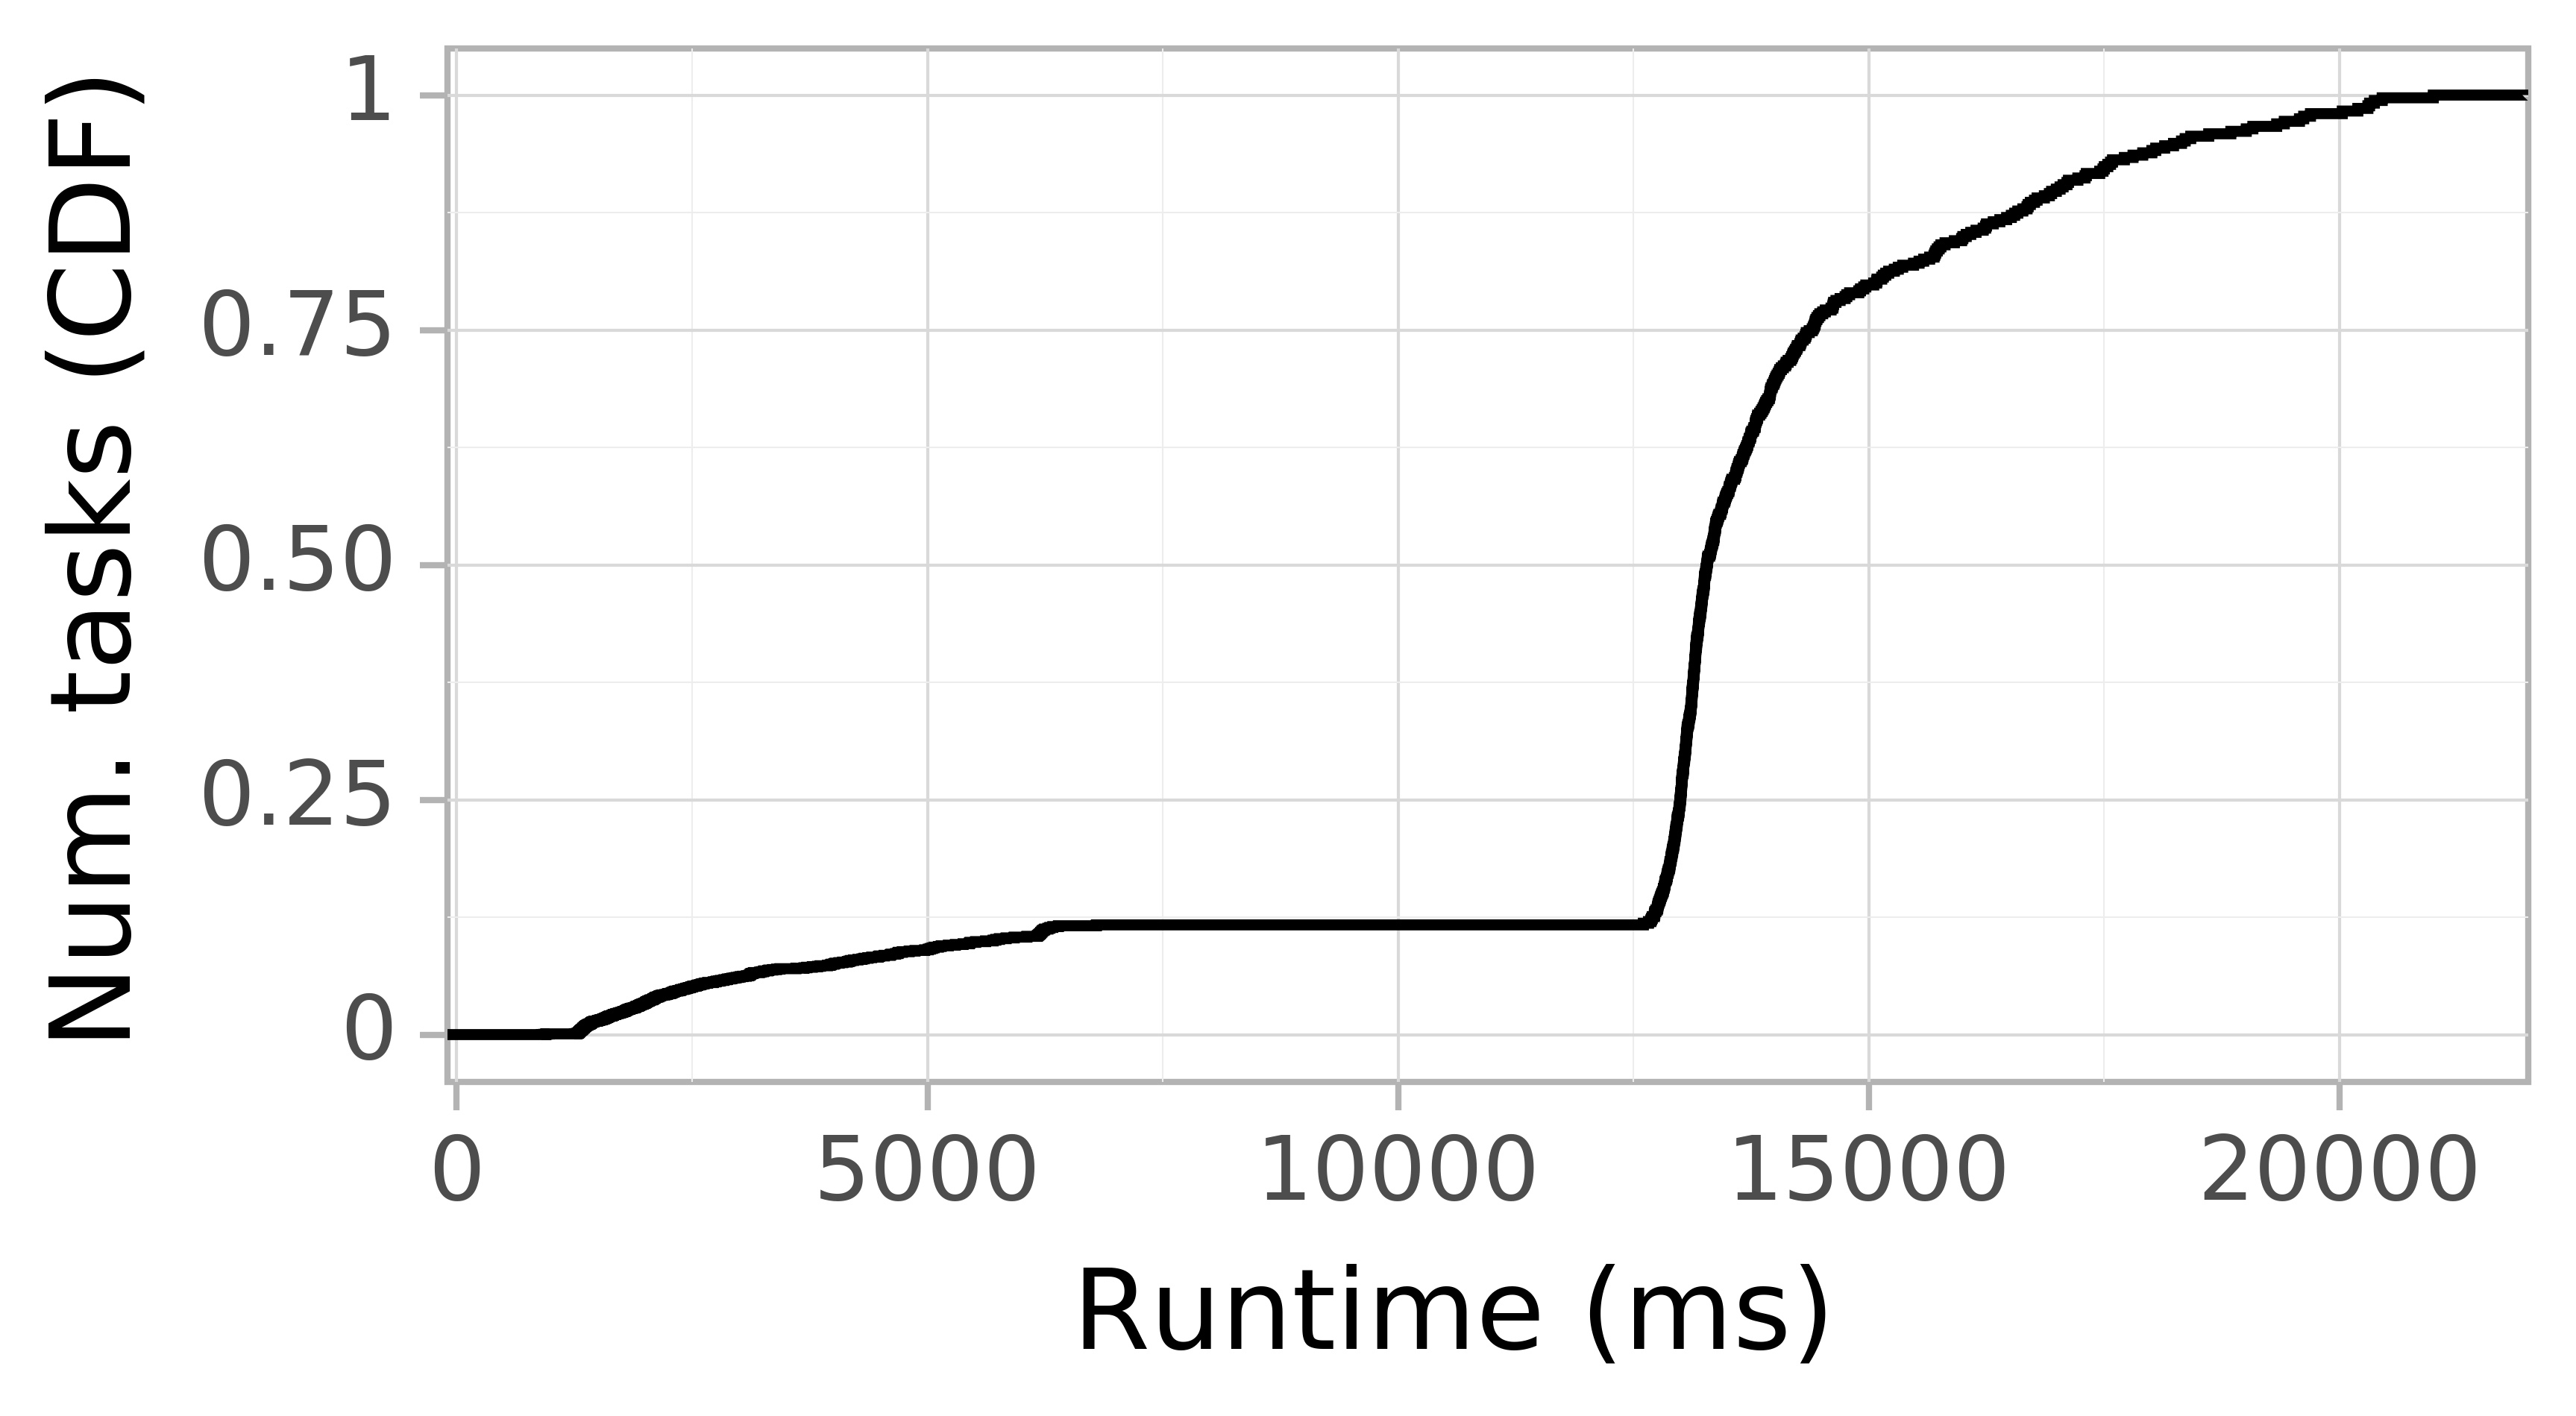 Task runtime CDF graph for the askalon-new_ee25 trace.